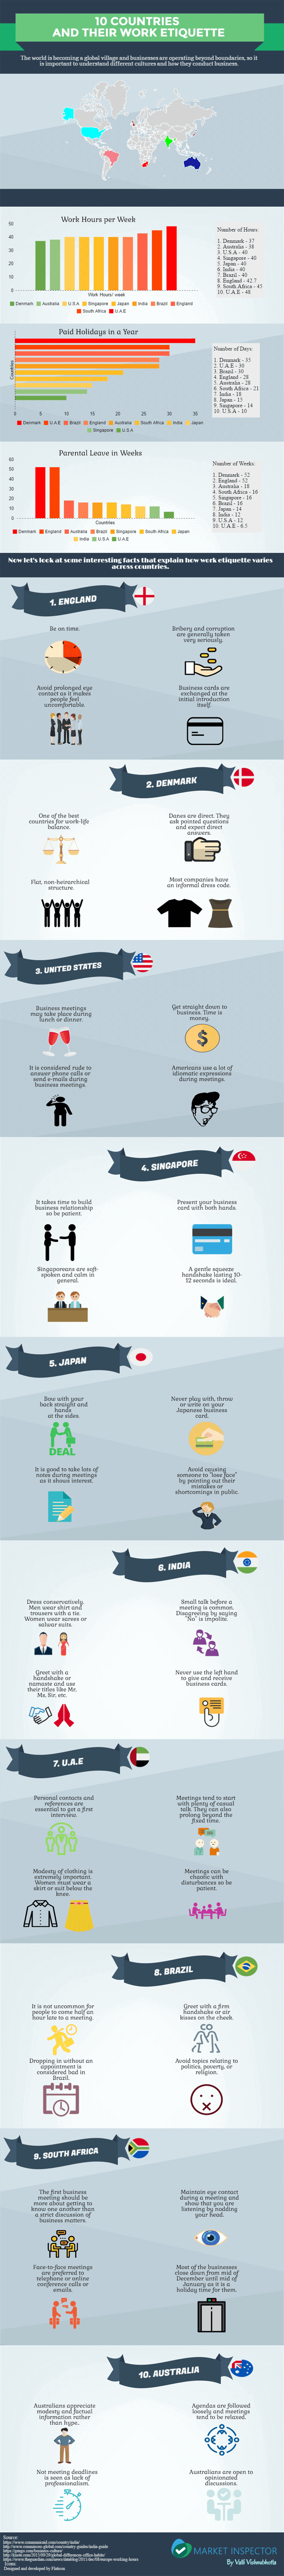 Work Etiquette Around The World